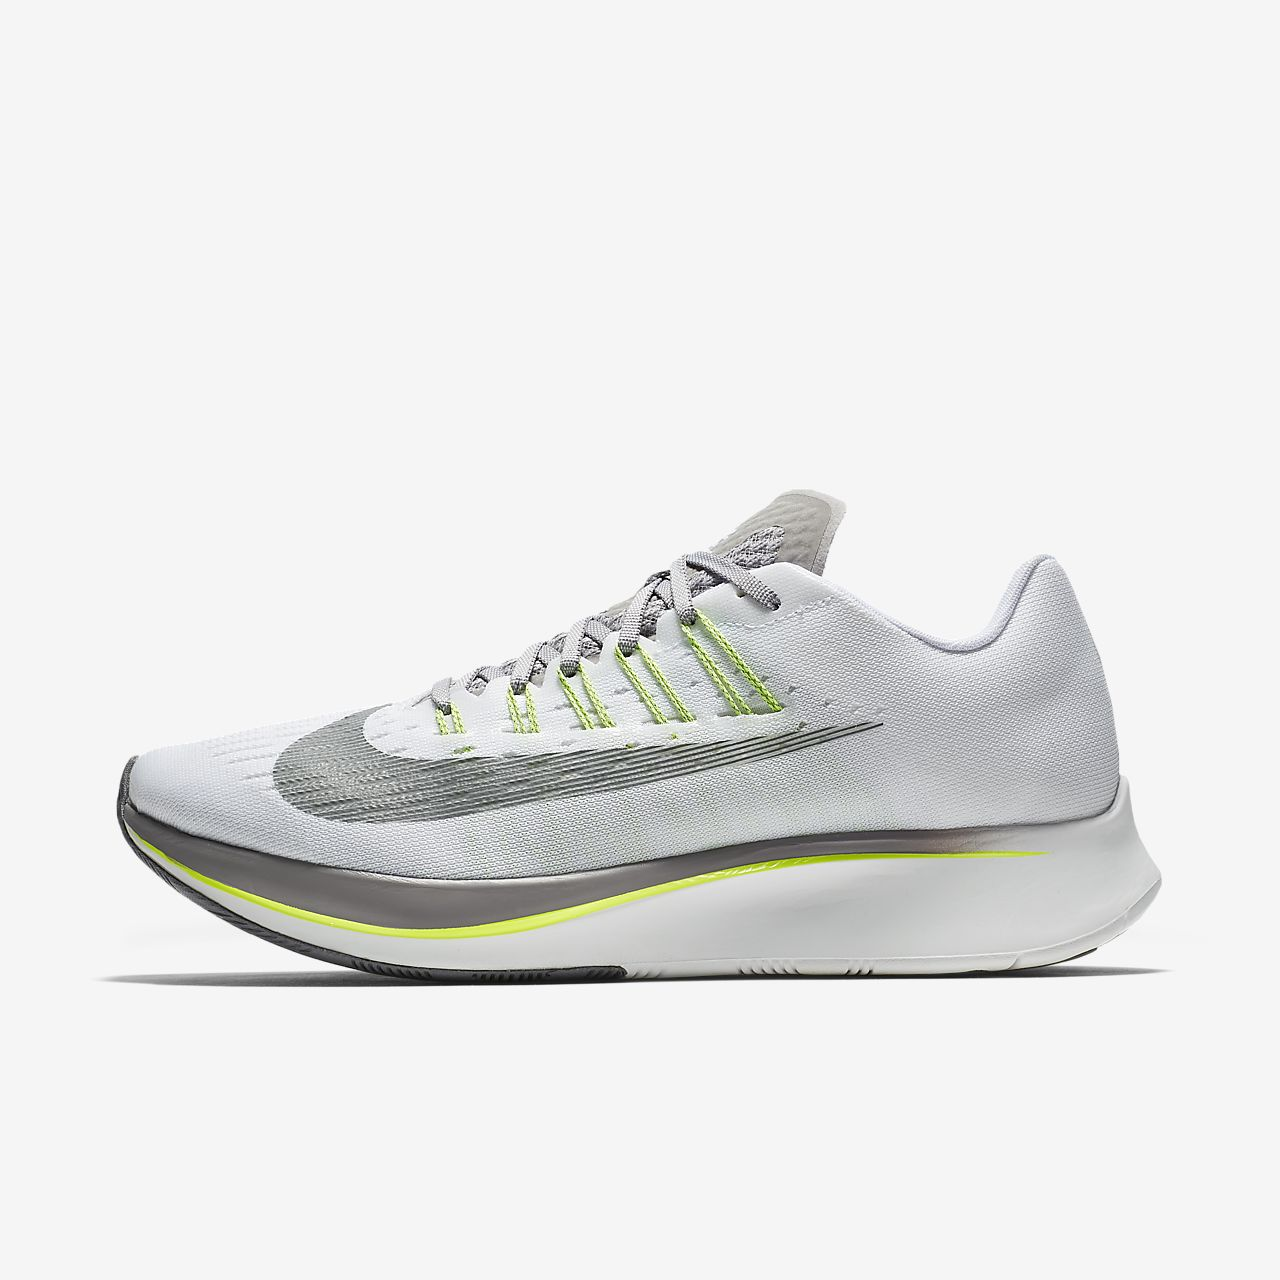 530446341a9e Nike Zoom Fly Men s Running Shoe. Nike.com